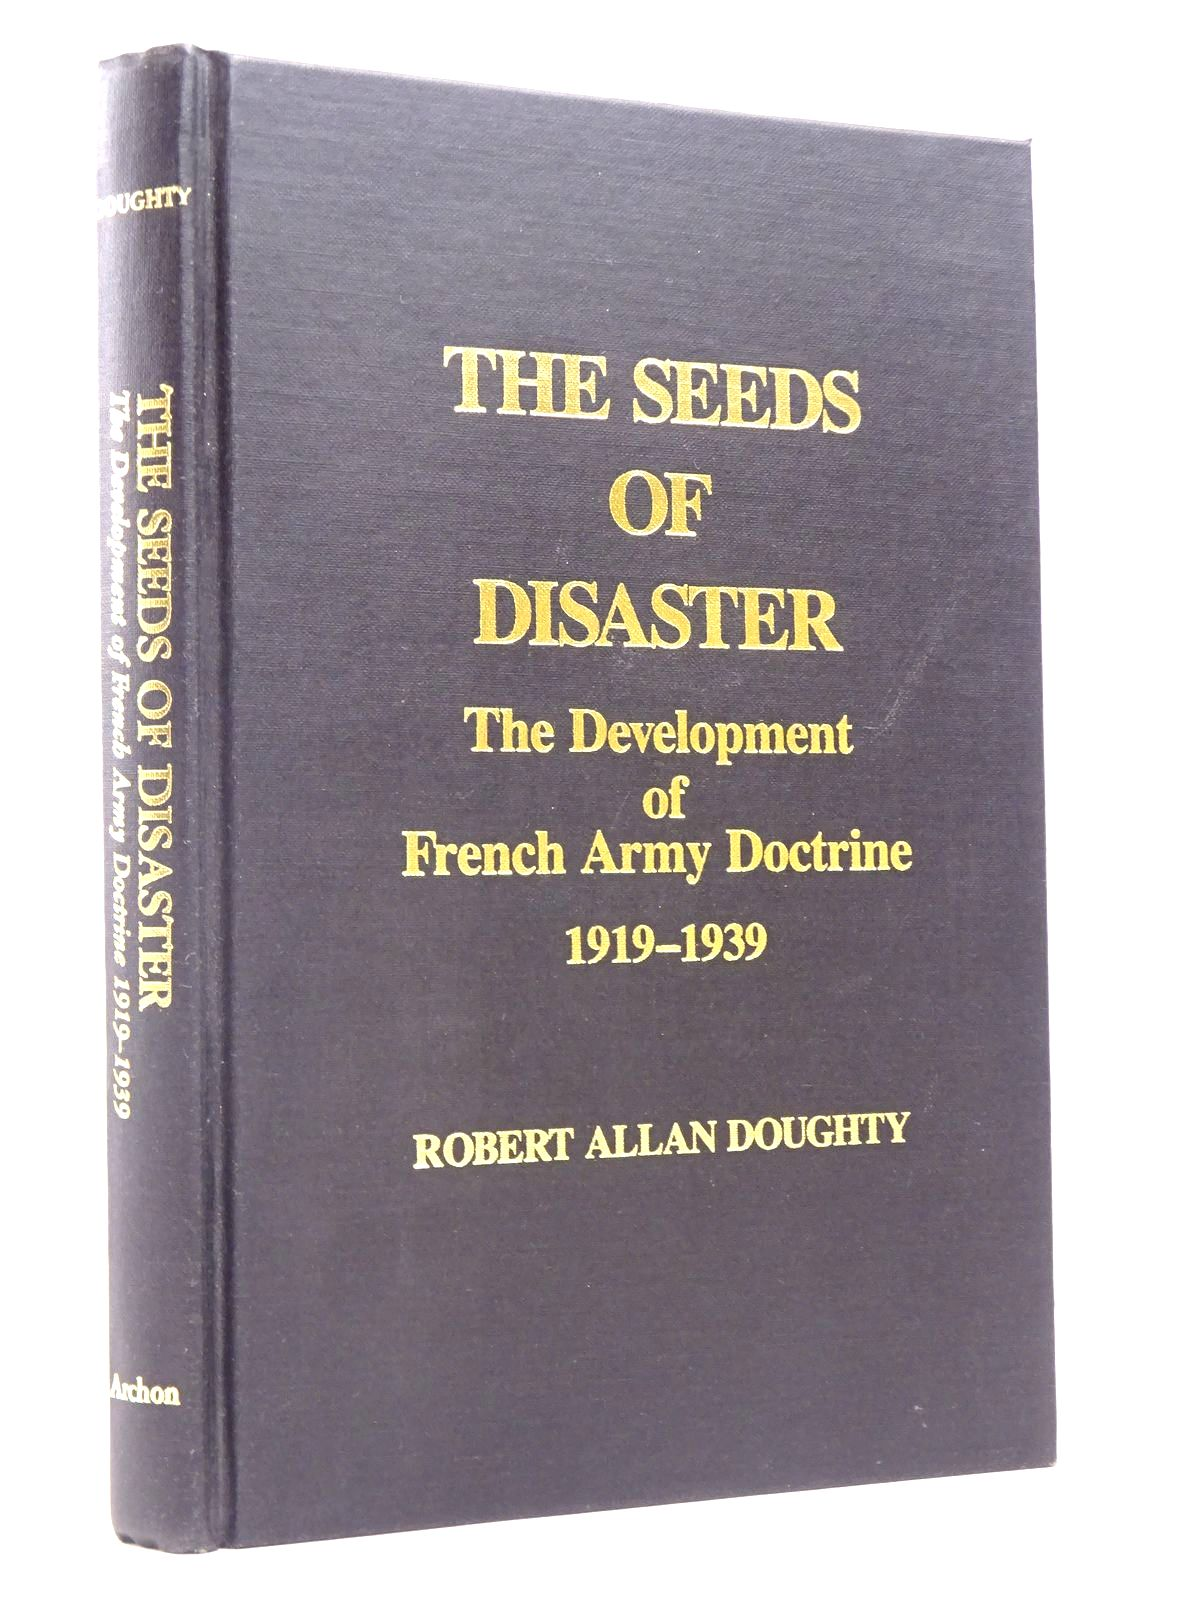 Photo of THE SEEDS OF DISASTER: THE DEVELOPMENT OF FRENCH ARMY DOCTRINE 1919-1939